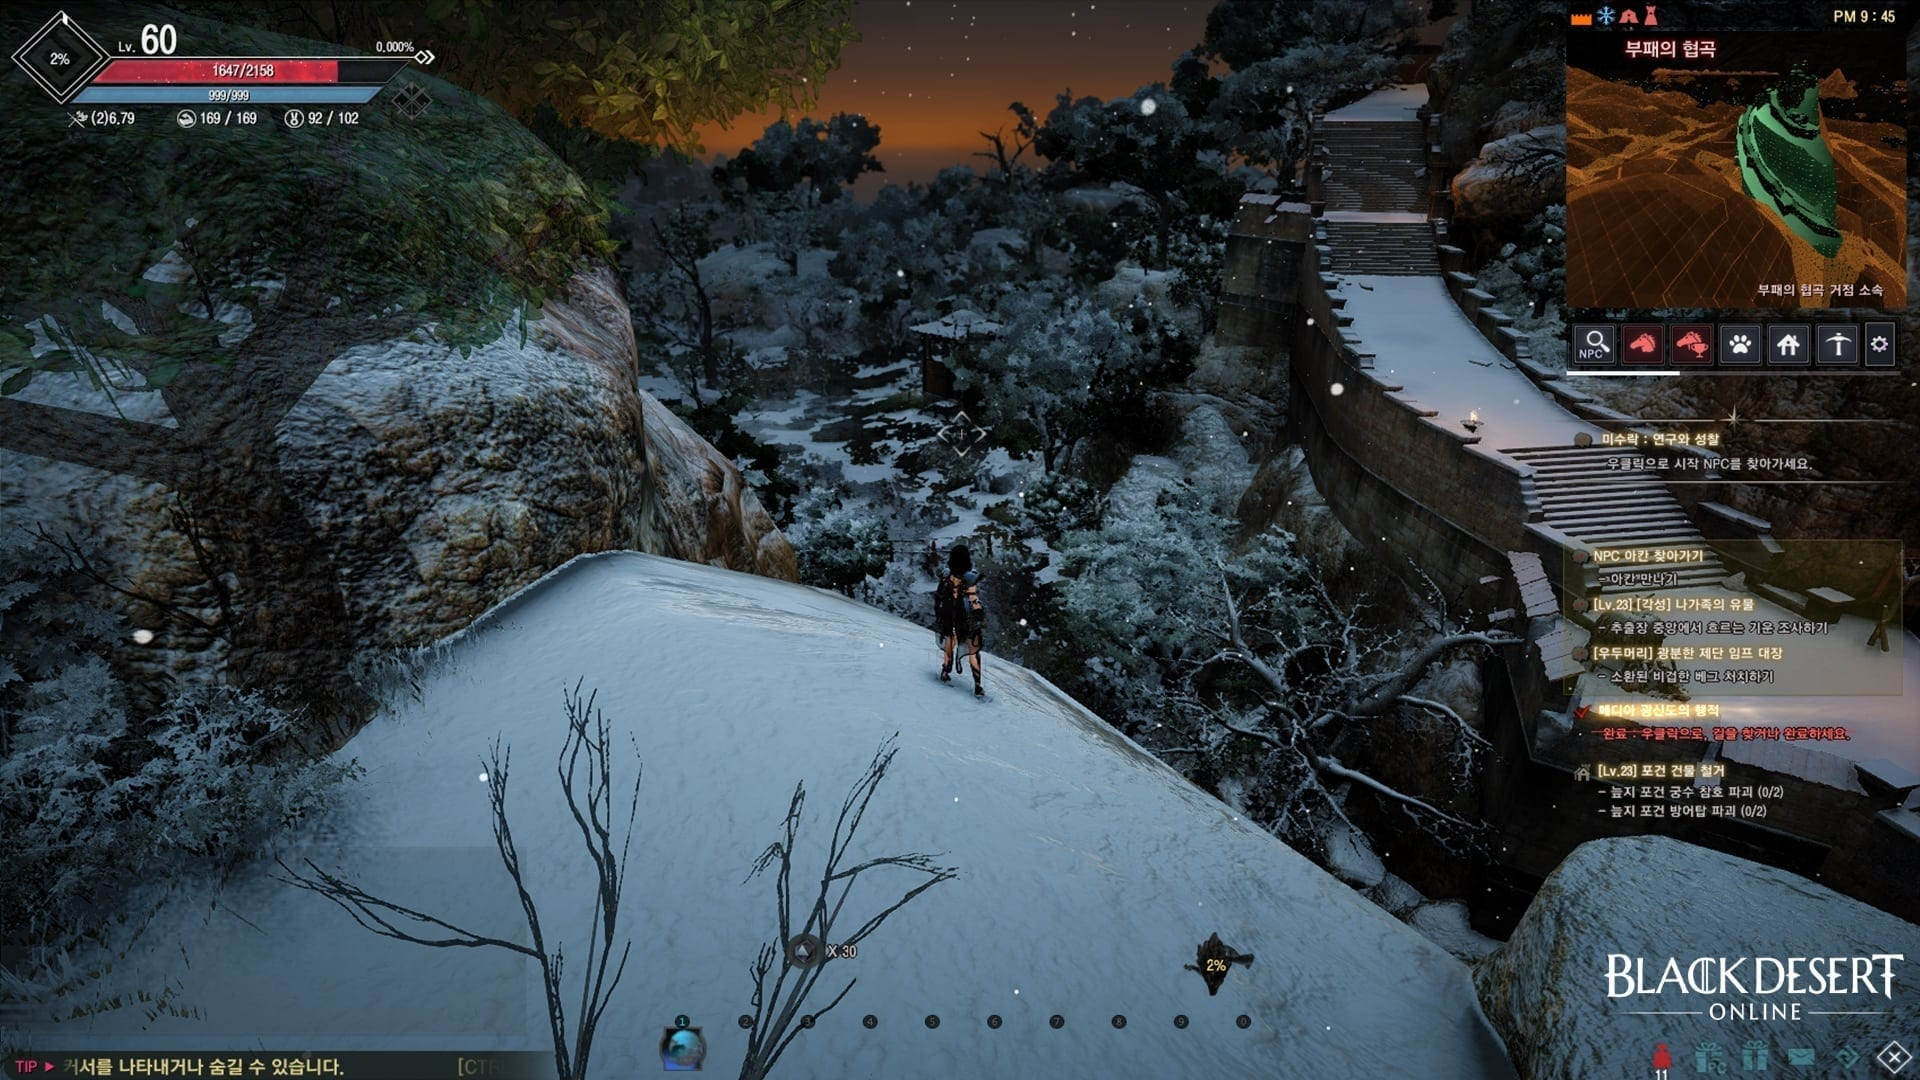 Black desert online major game improvements and new region in addition pearl abyss is working on a 3d mini map that not only highlights points of interest but also shows elevations in the landscape gumiabroncs Image collections